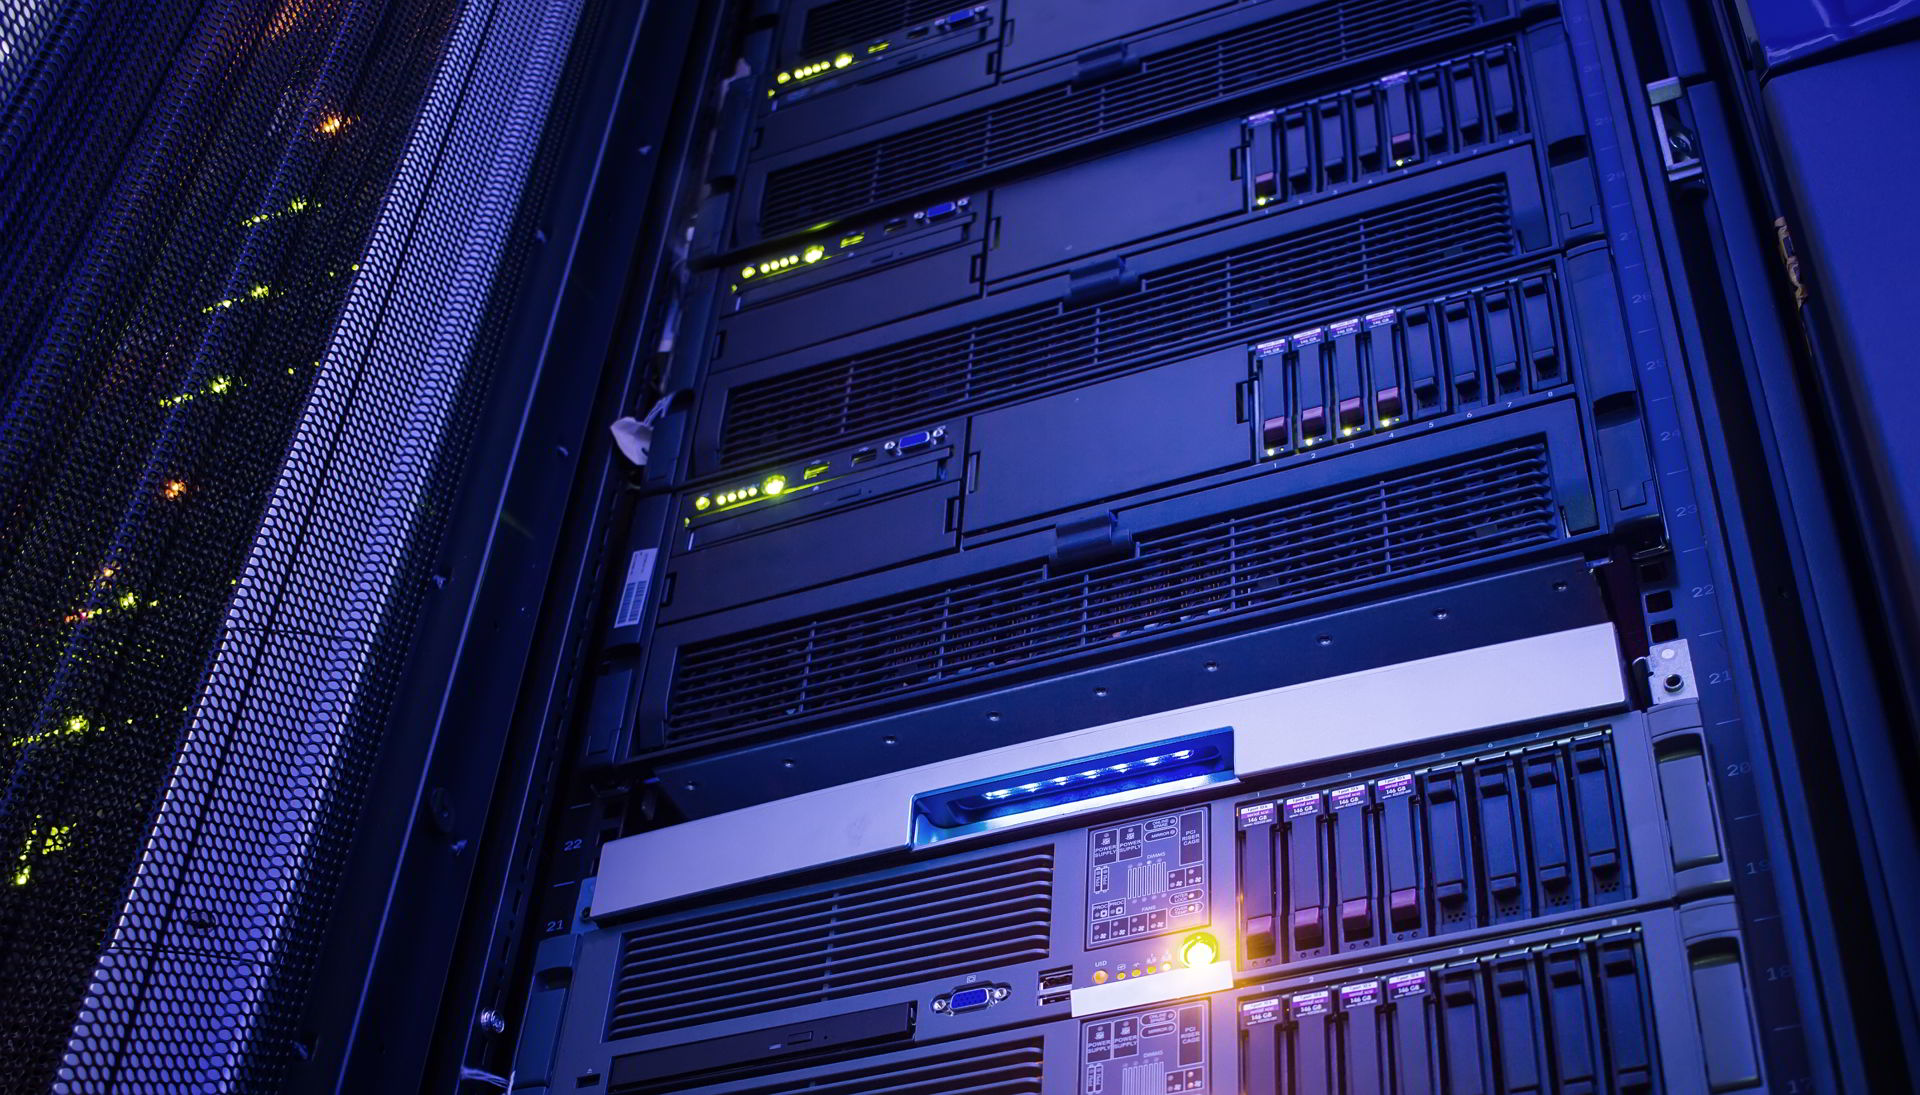 De 9 ani furnizor de servicii Data Center